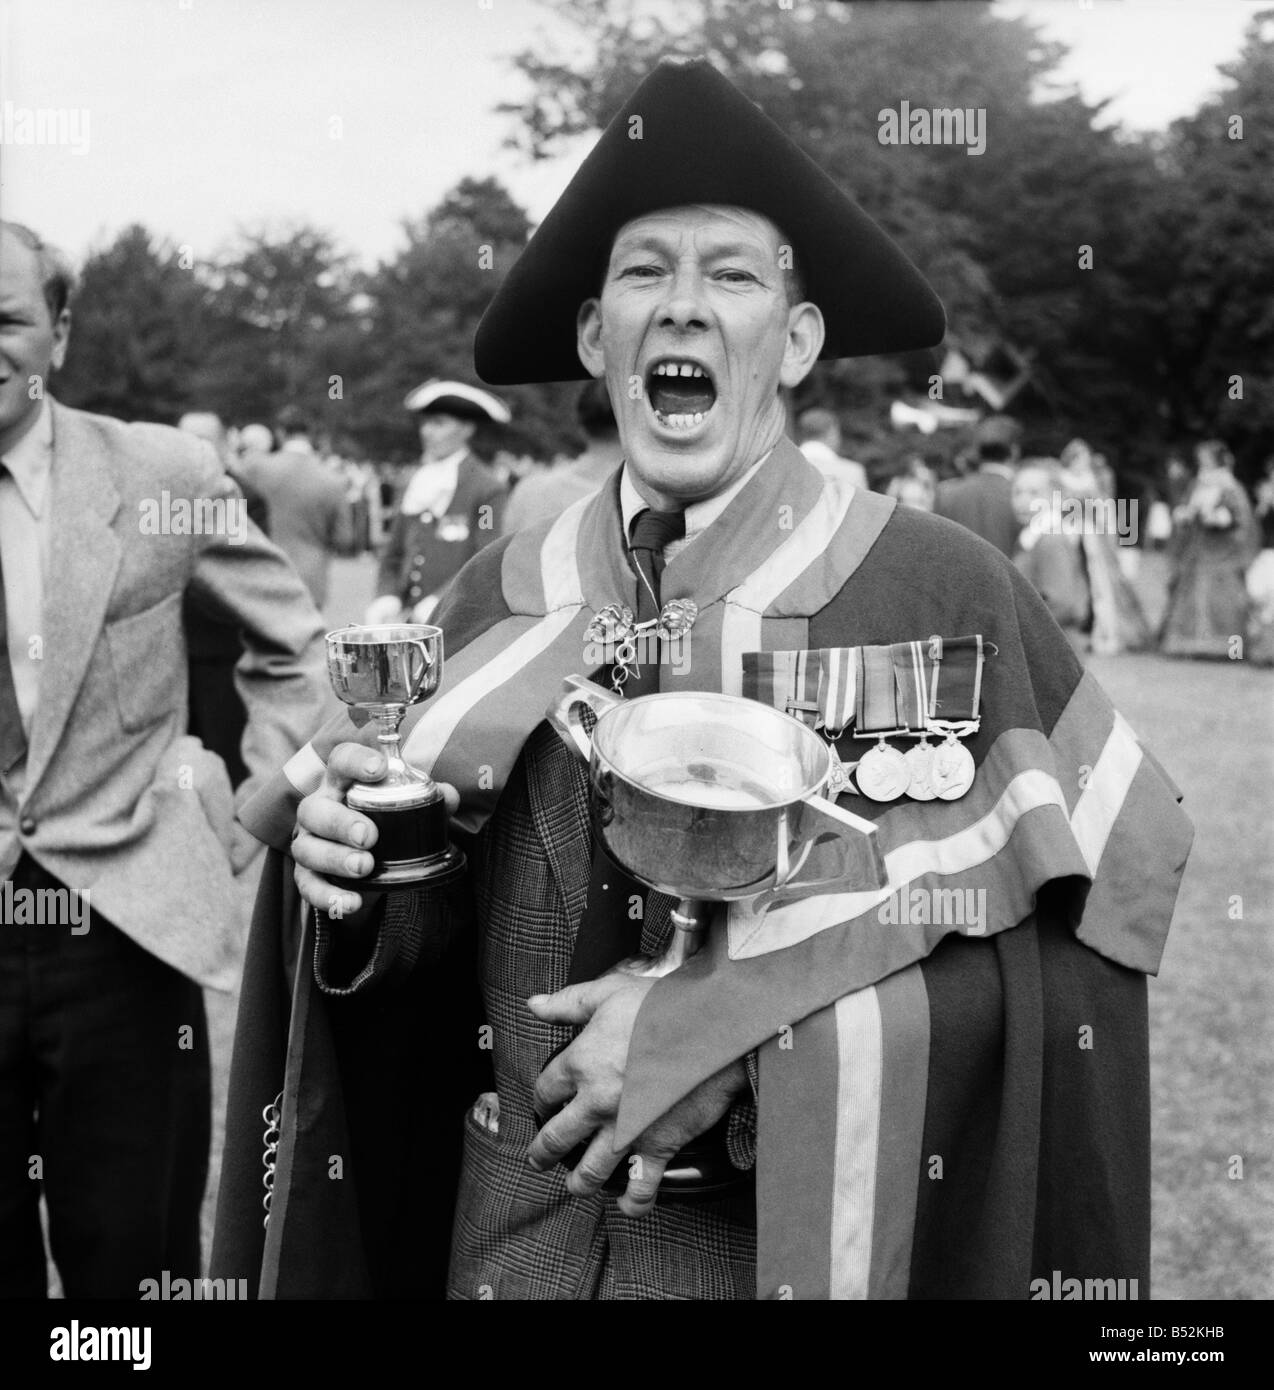 National Town Criers Championship, Hastings. Ben Johnson. July 1952 C3582 - Stock Image